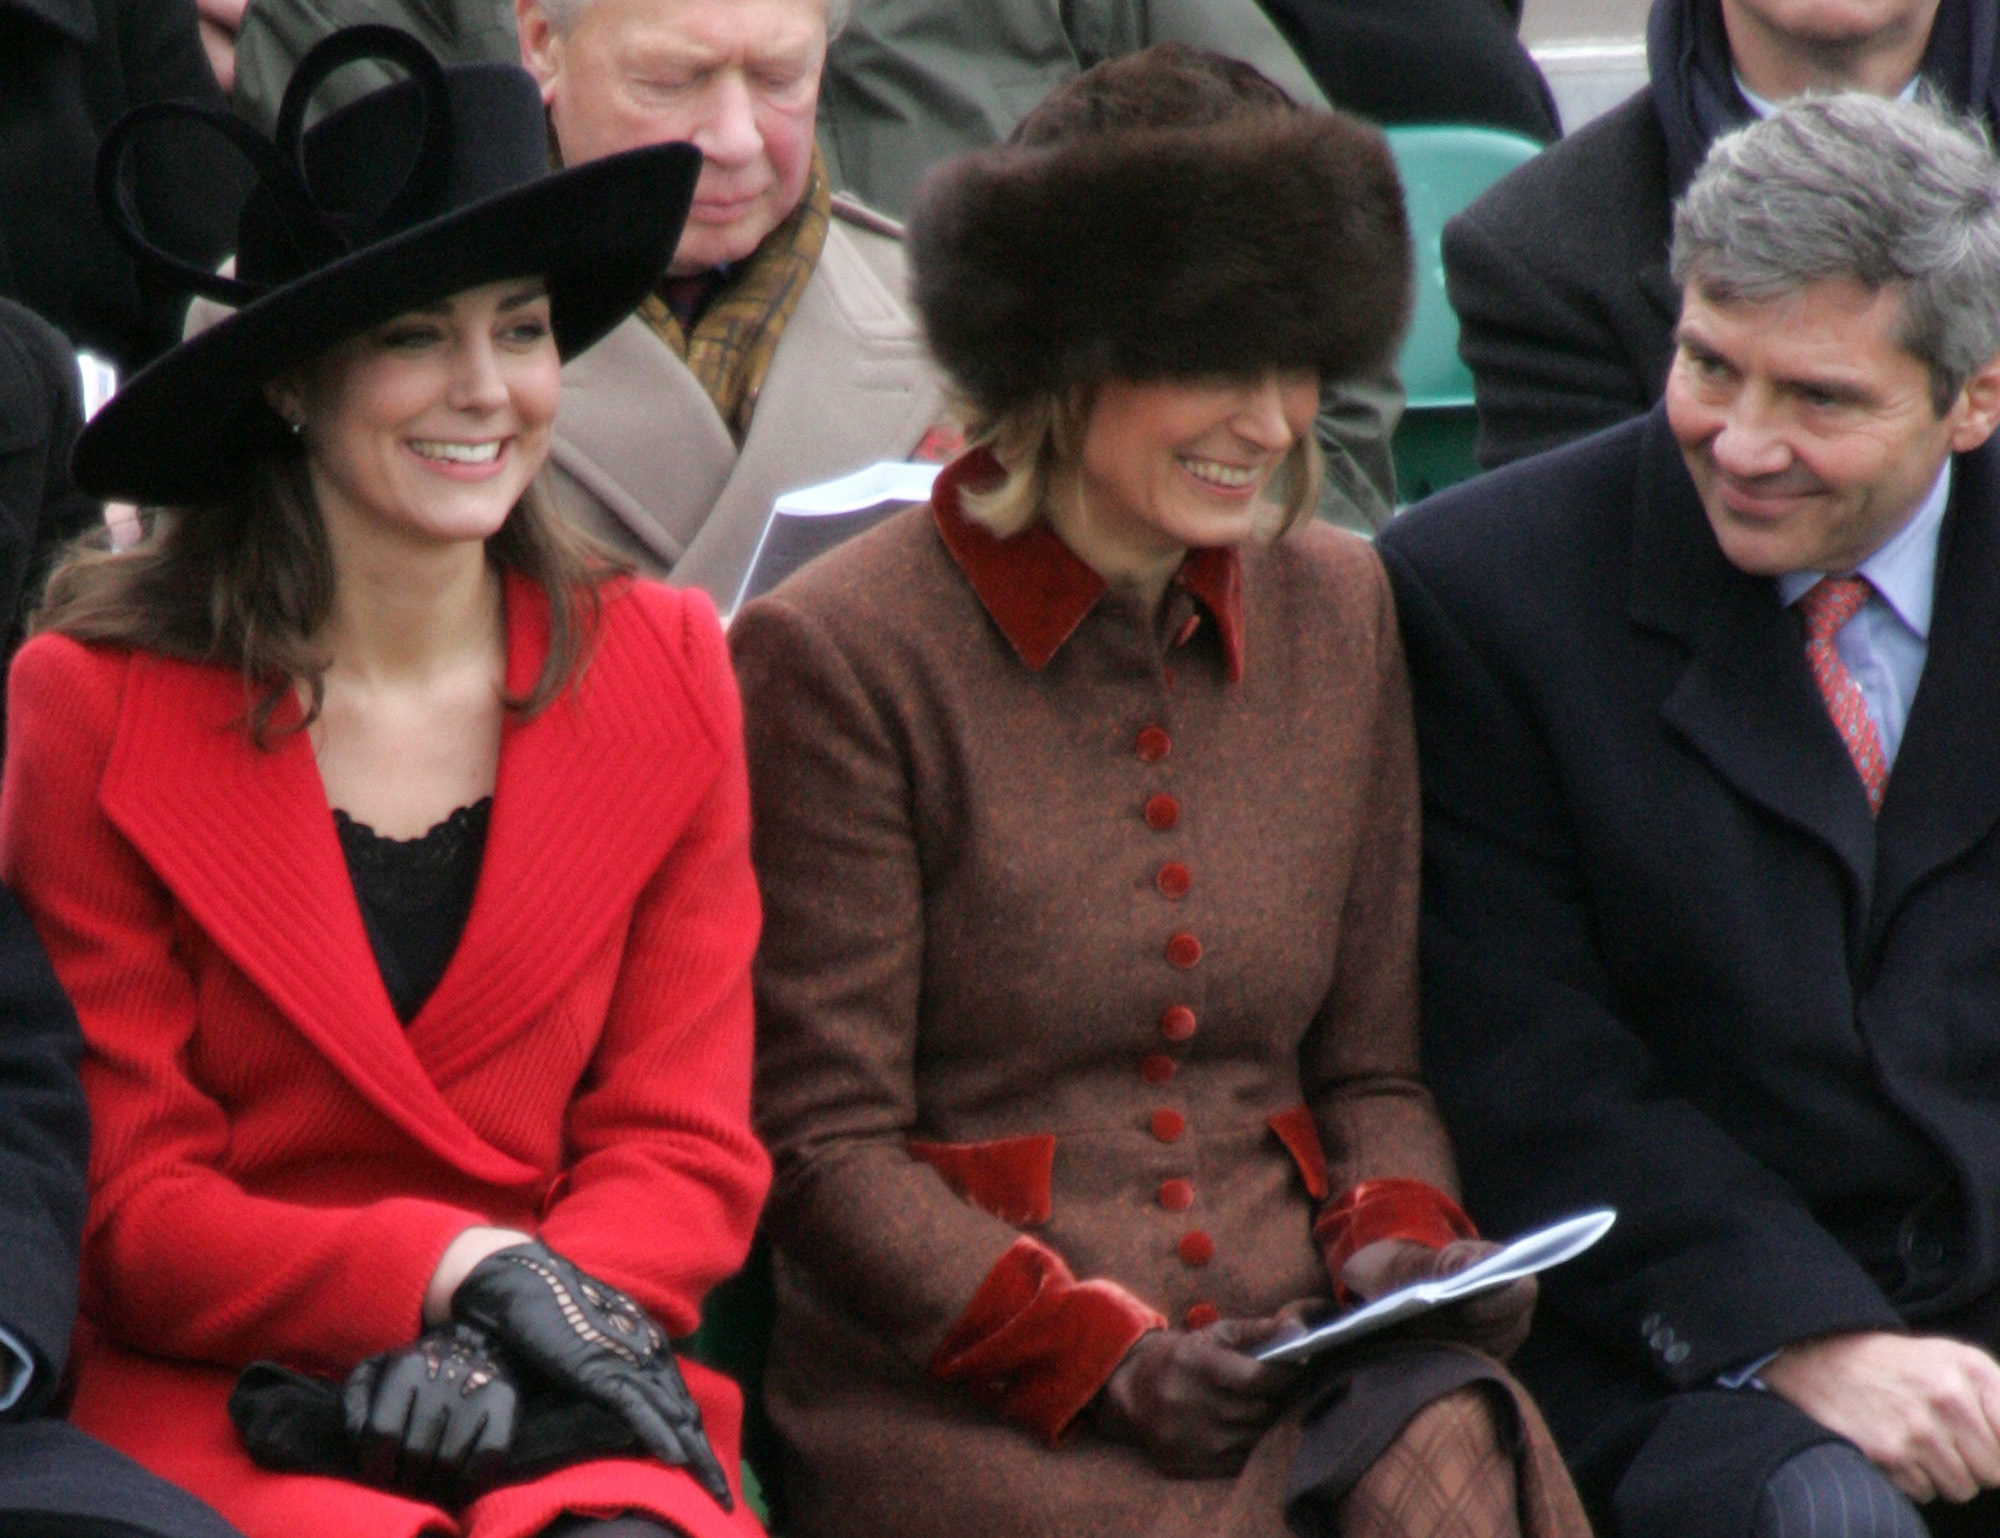 Prince William's girlfriend Kate Middleton (l) with her mother Carole and father Michael (r) at the parade ground at the Royal Military College, Sandhurst, for today's Sovereign's parade.   (Photo by Tim Ockenden/PA Images via Getty Images)